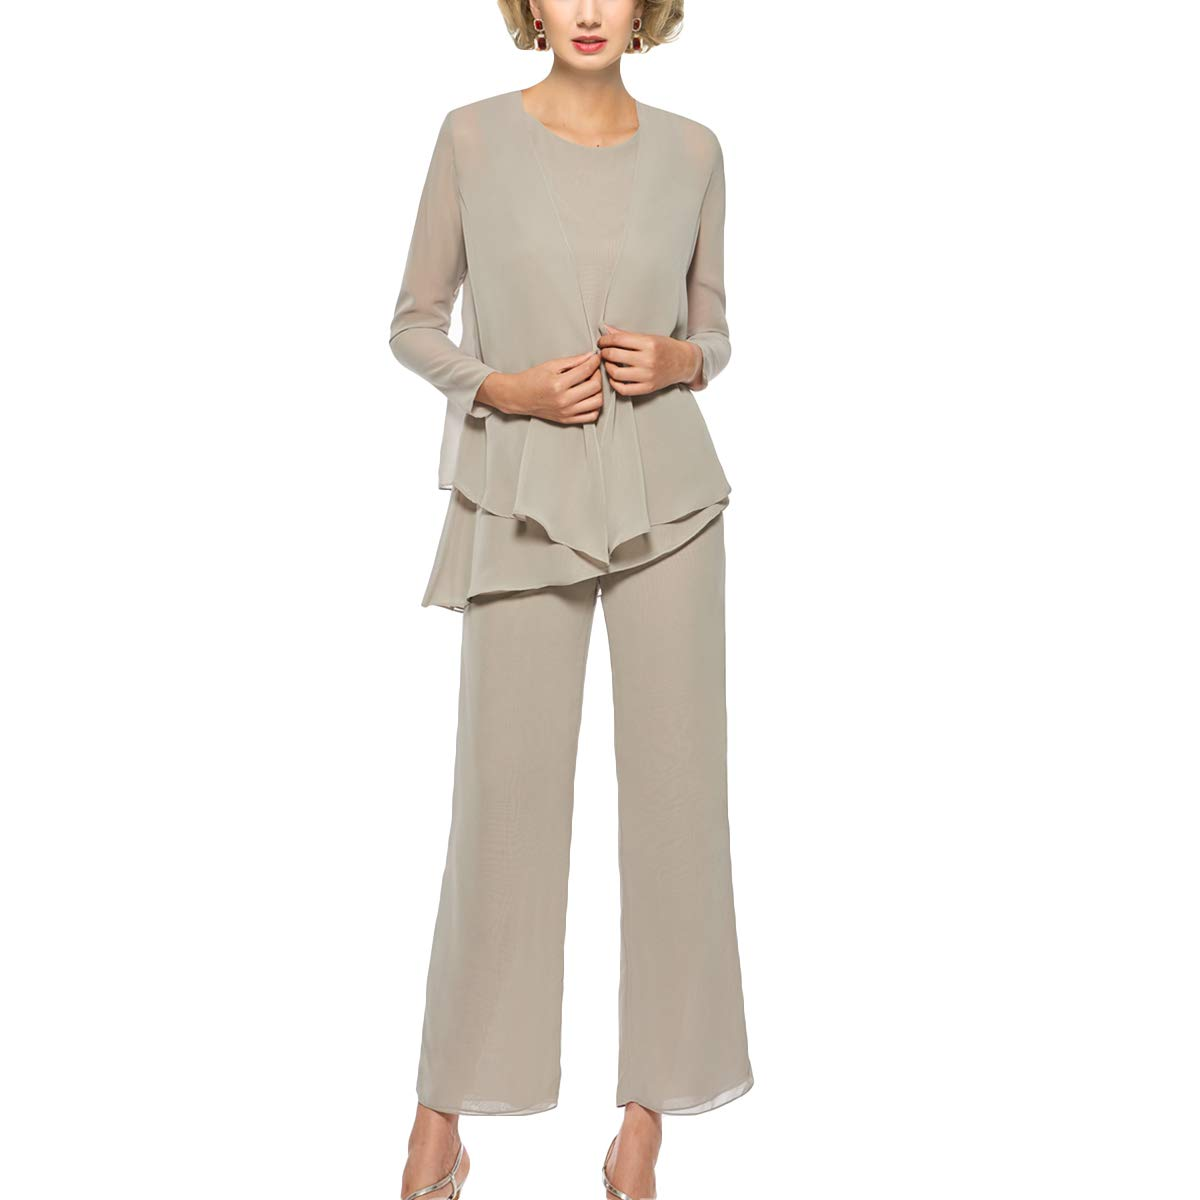 1bcd8f31842 Mother of The Bride Pant Suits 3 Piece Outfits Formal Womens Evening Long  Sleeve Chiffon Dressy Pantsuits for Weddings(Taupe 4)